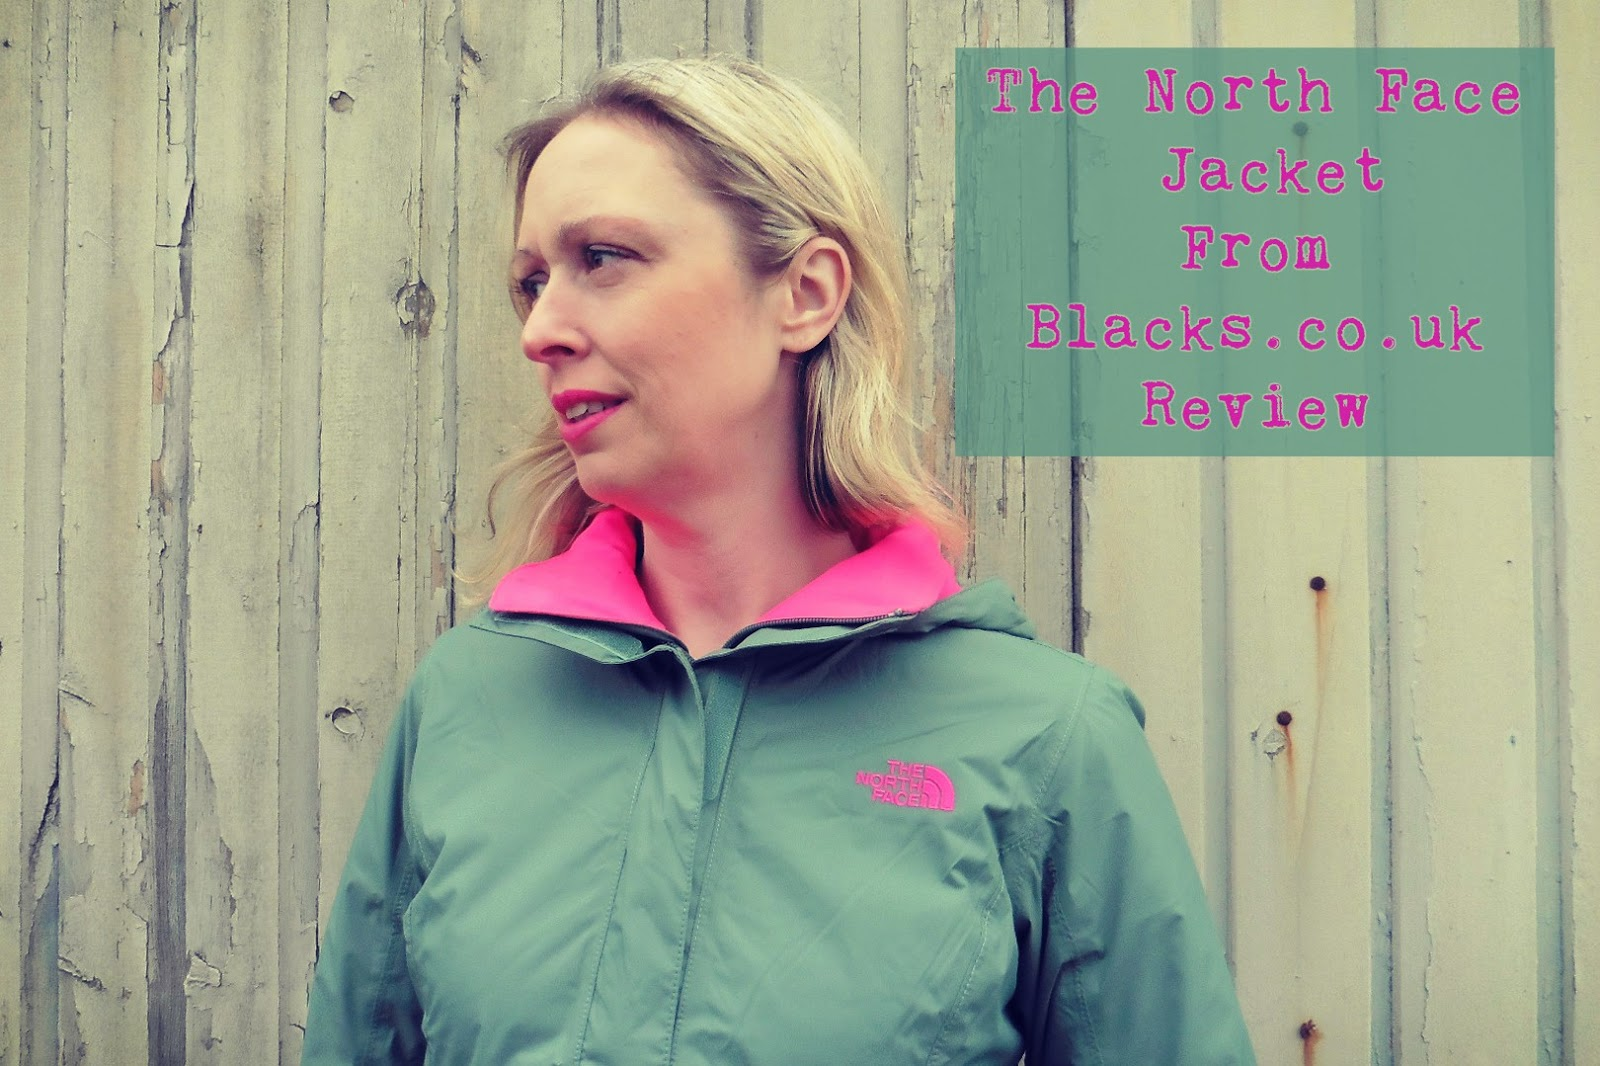 The North Face Jacket Review: Creative Mondays